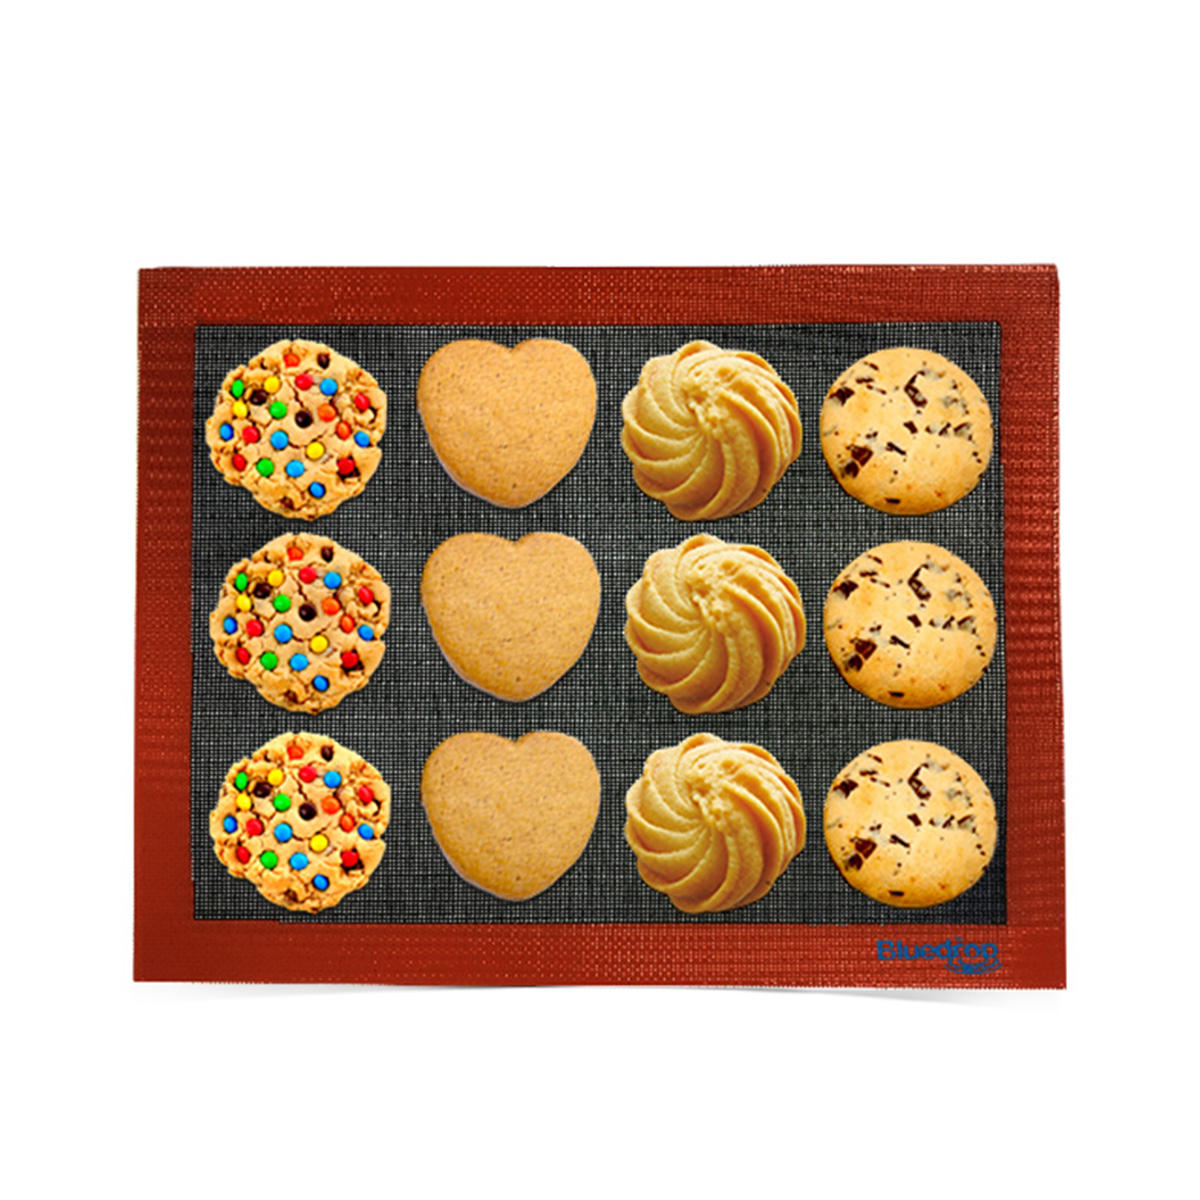 Excellent quality bakeware set of 3 liner silicon lace mat for cake pastry